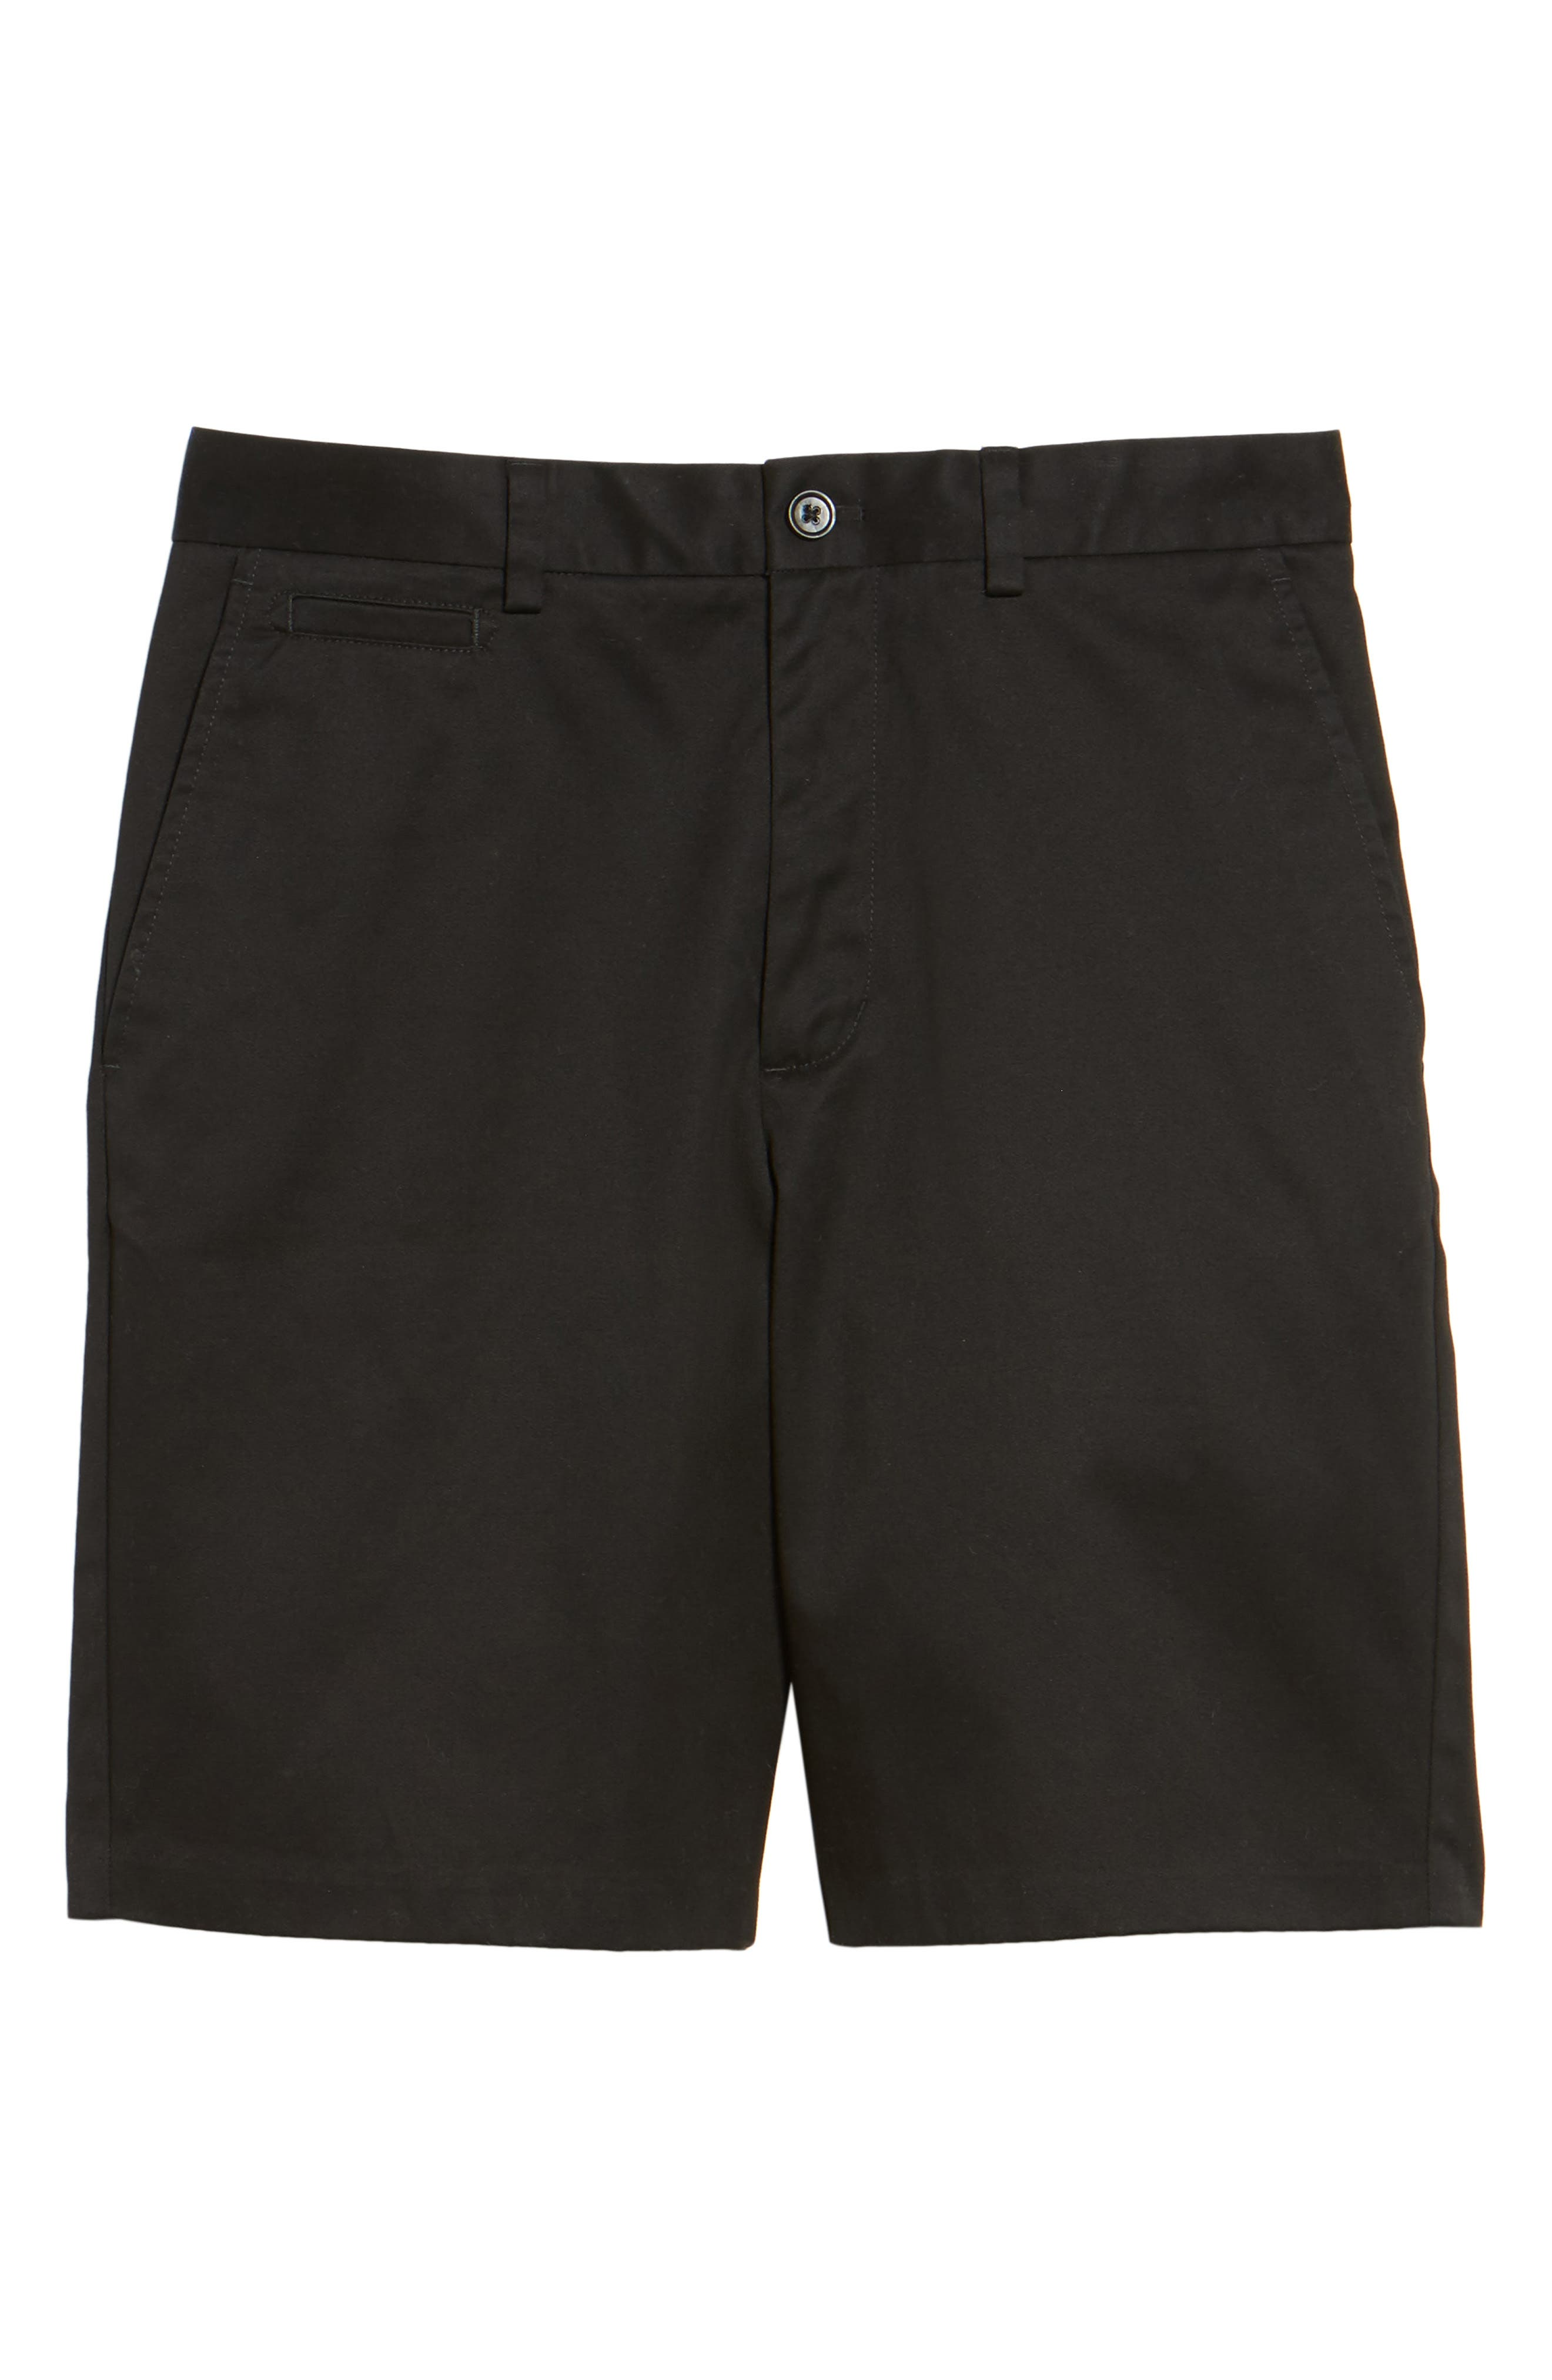 Smartcare<sup>™</sup> Flat Front Shorts,                             Alternate thumbnail 6, color,                             BLACK